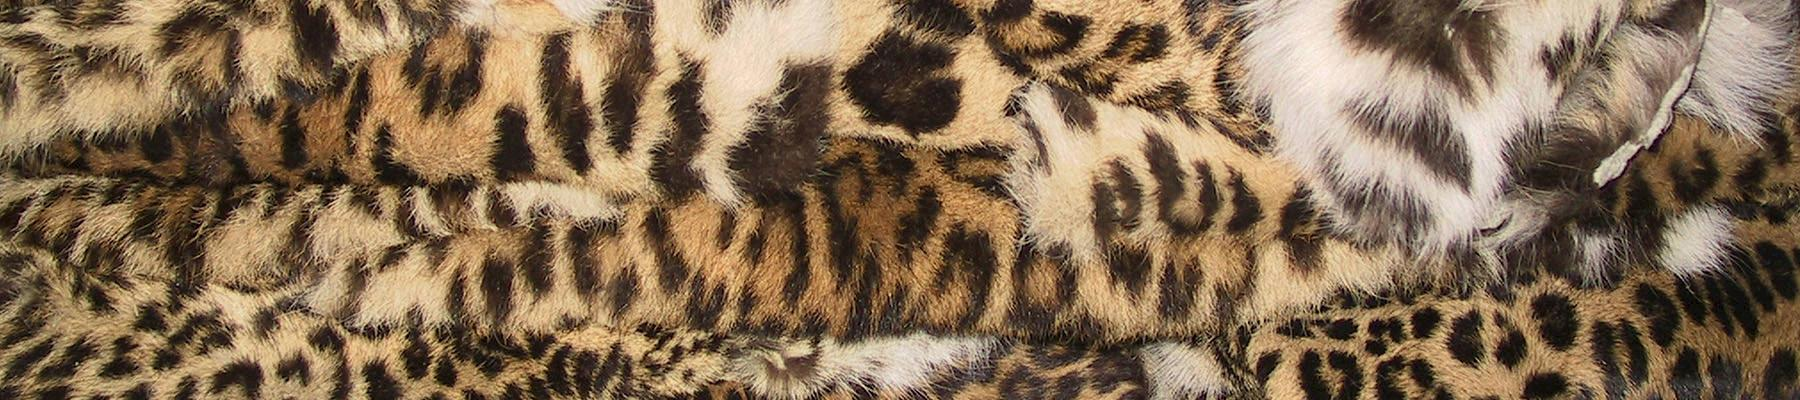 Confisctaed leopard skins, one example of an ongoing trade in China © Mark Atkinson / WWF